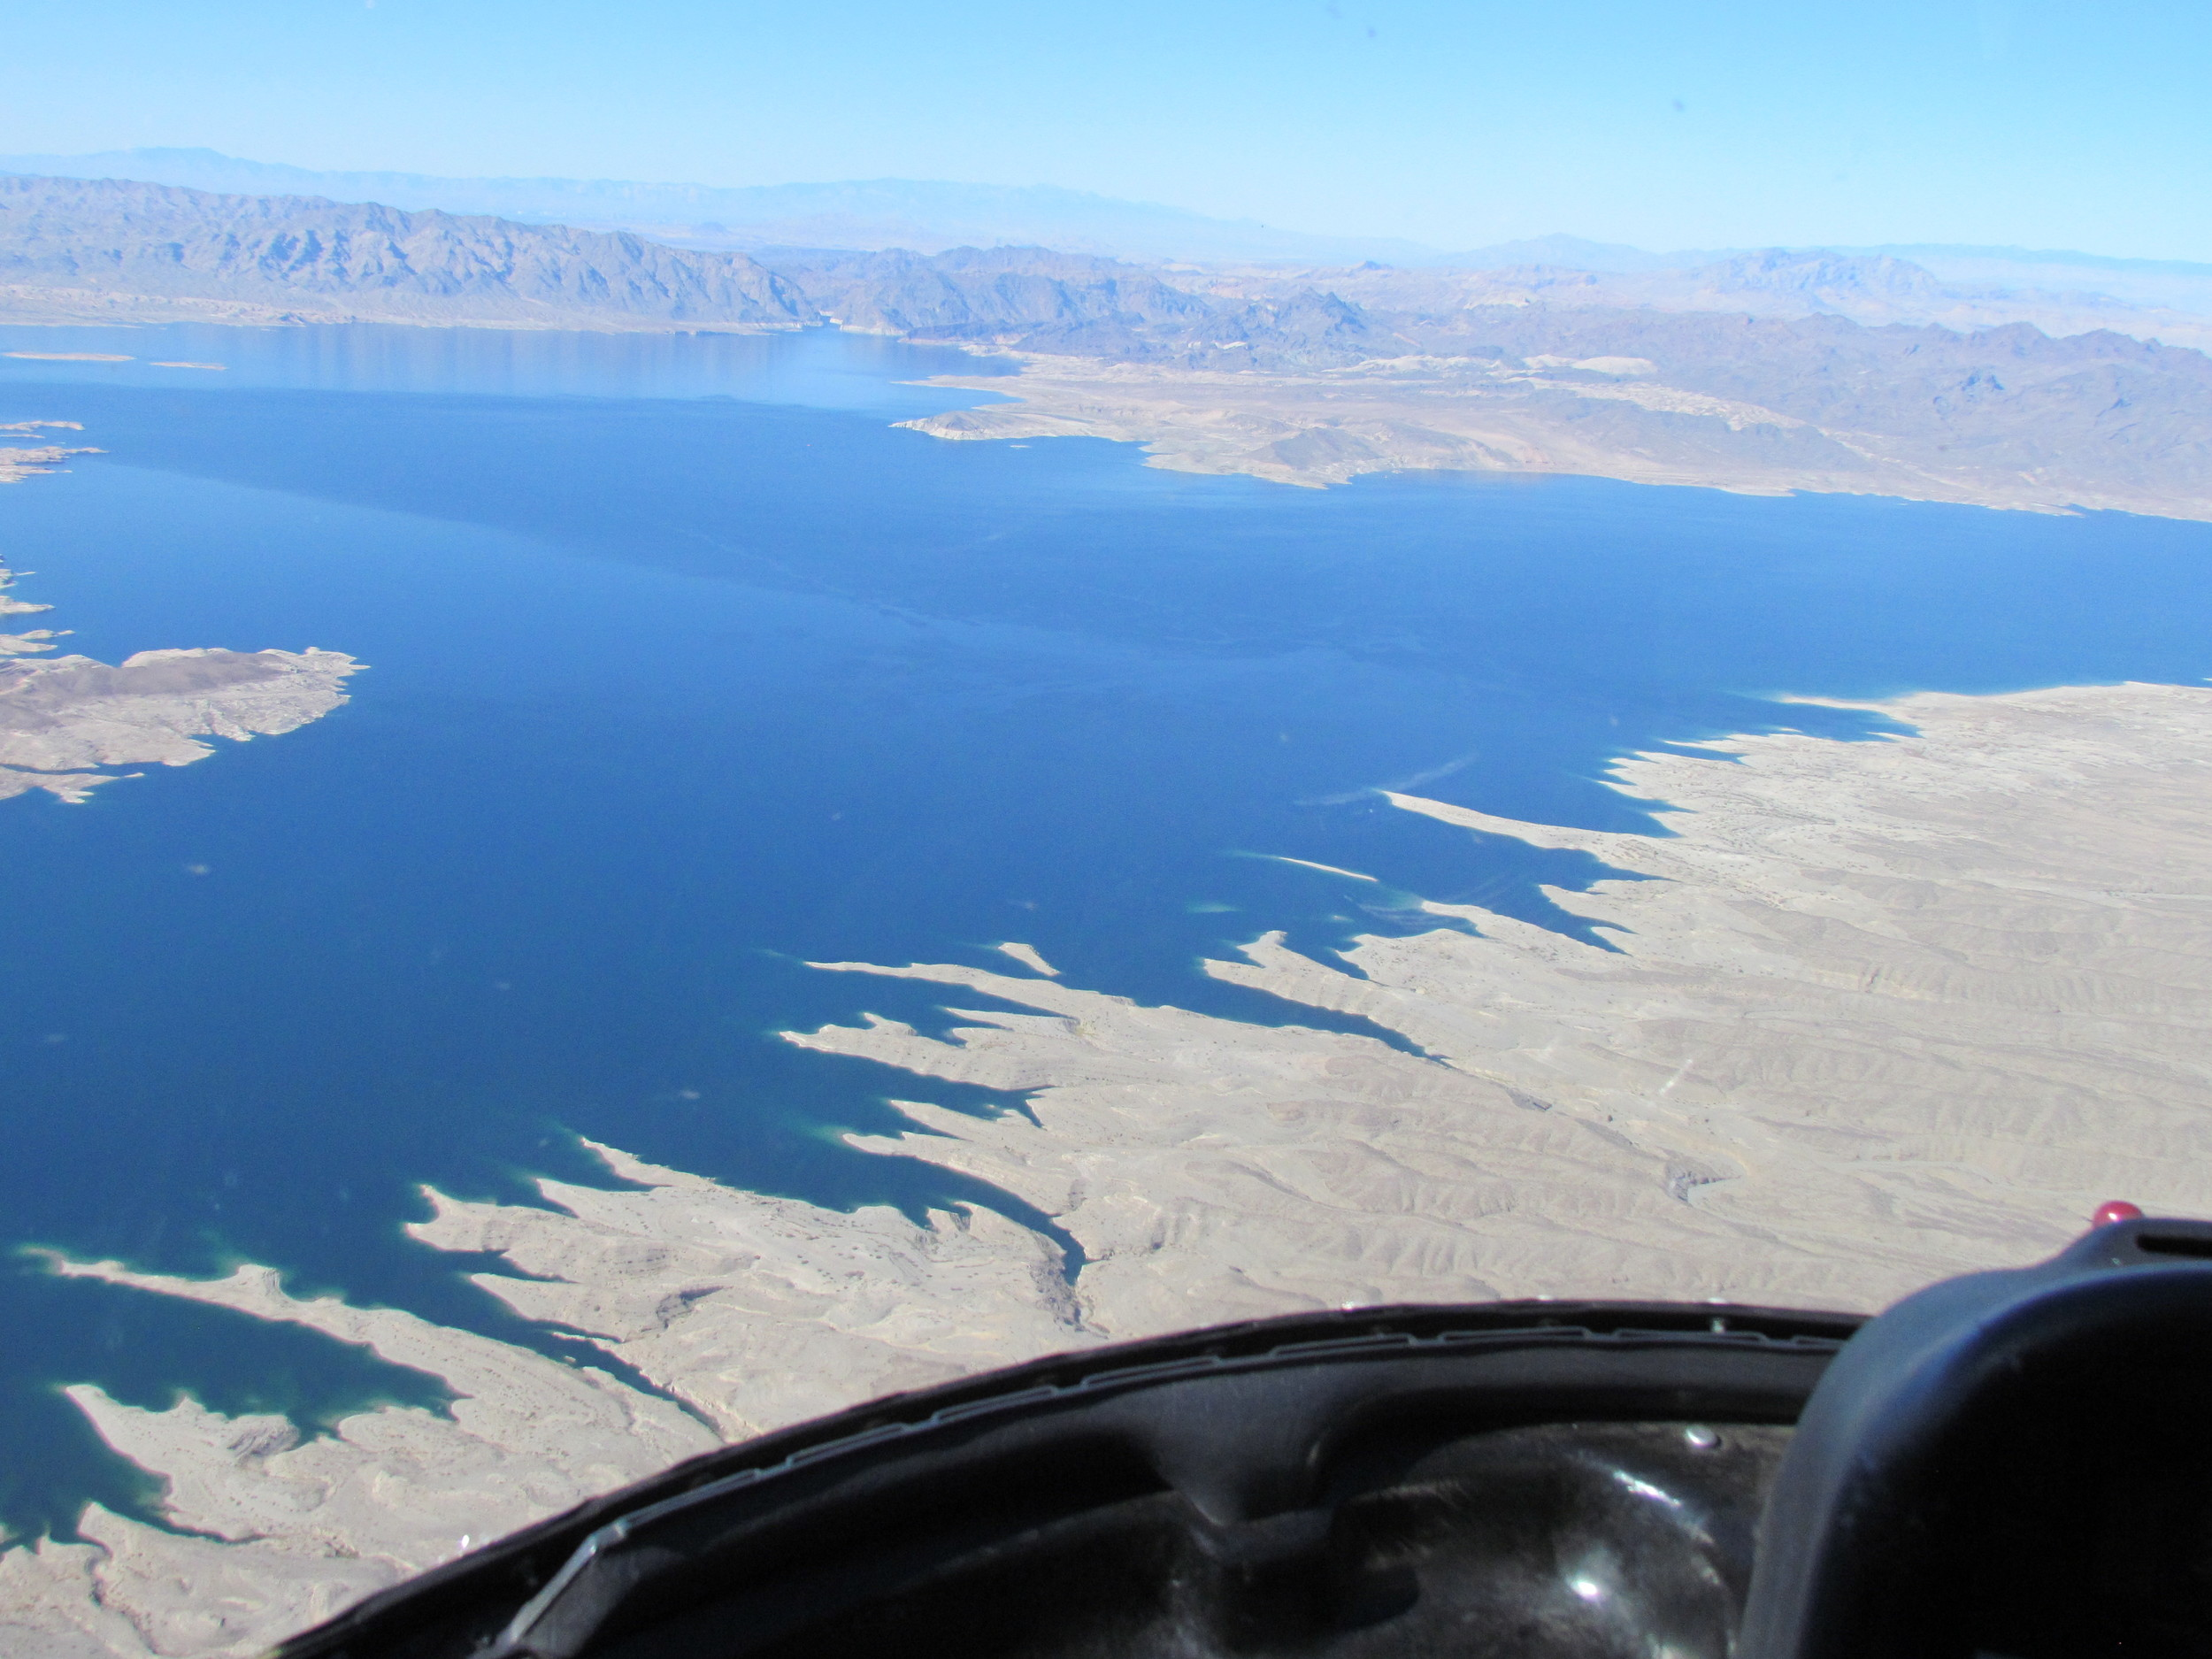 Lake Mead - the largest man made lake in the US